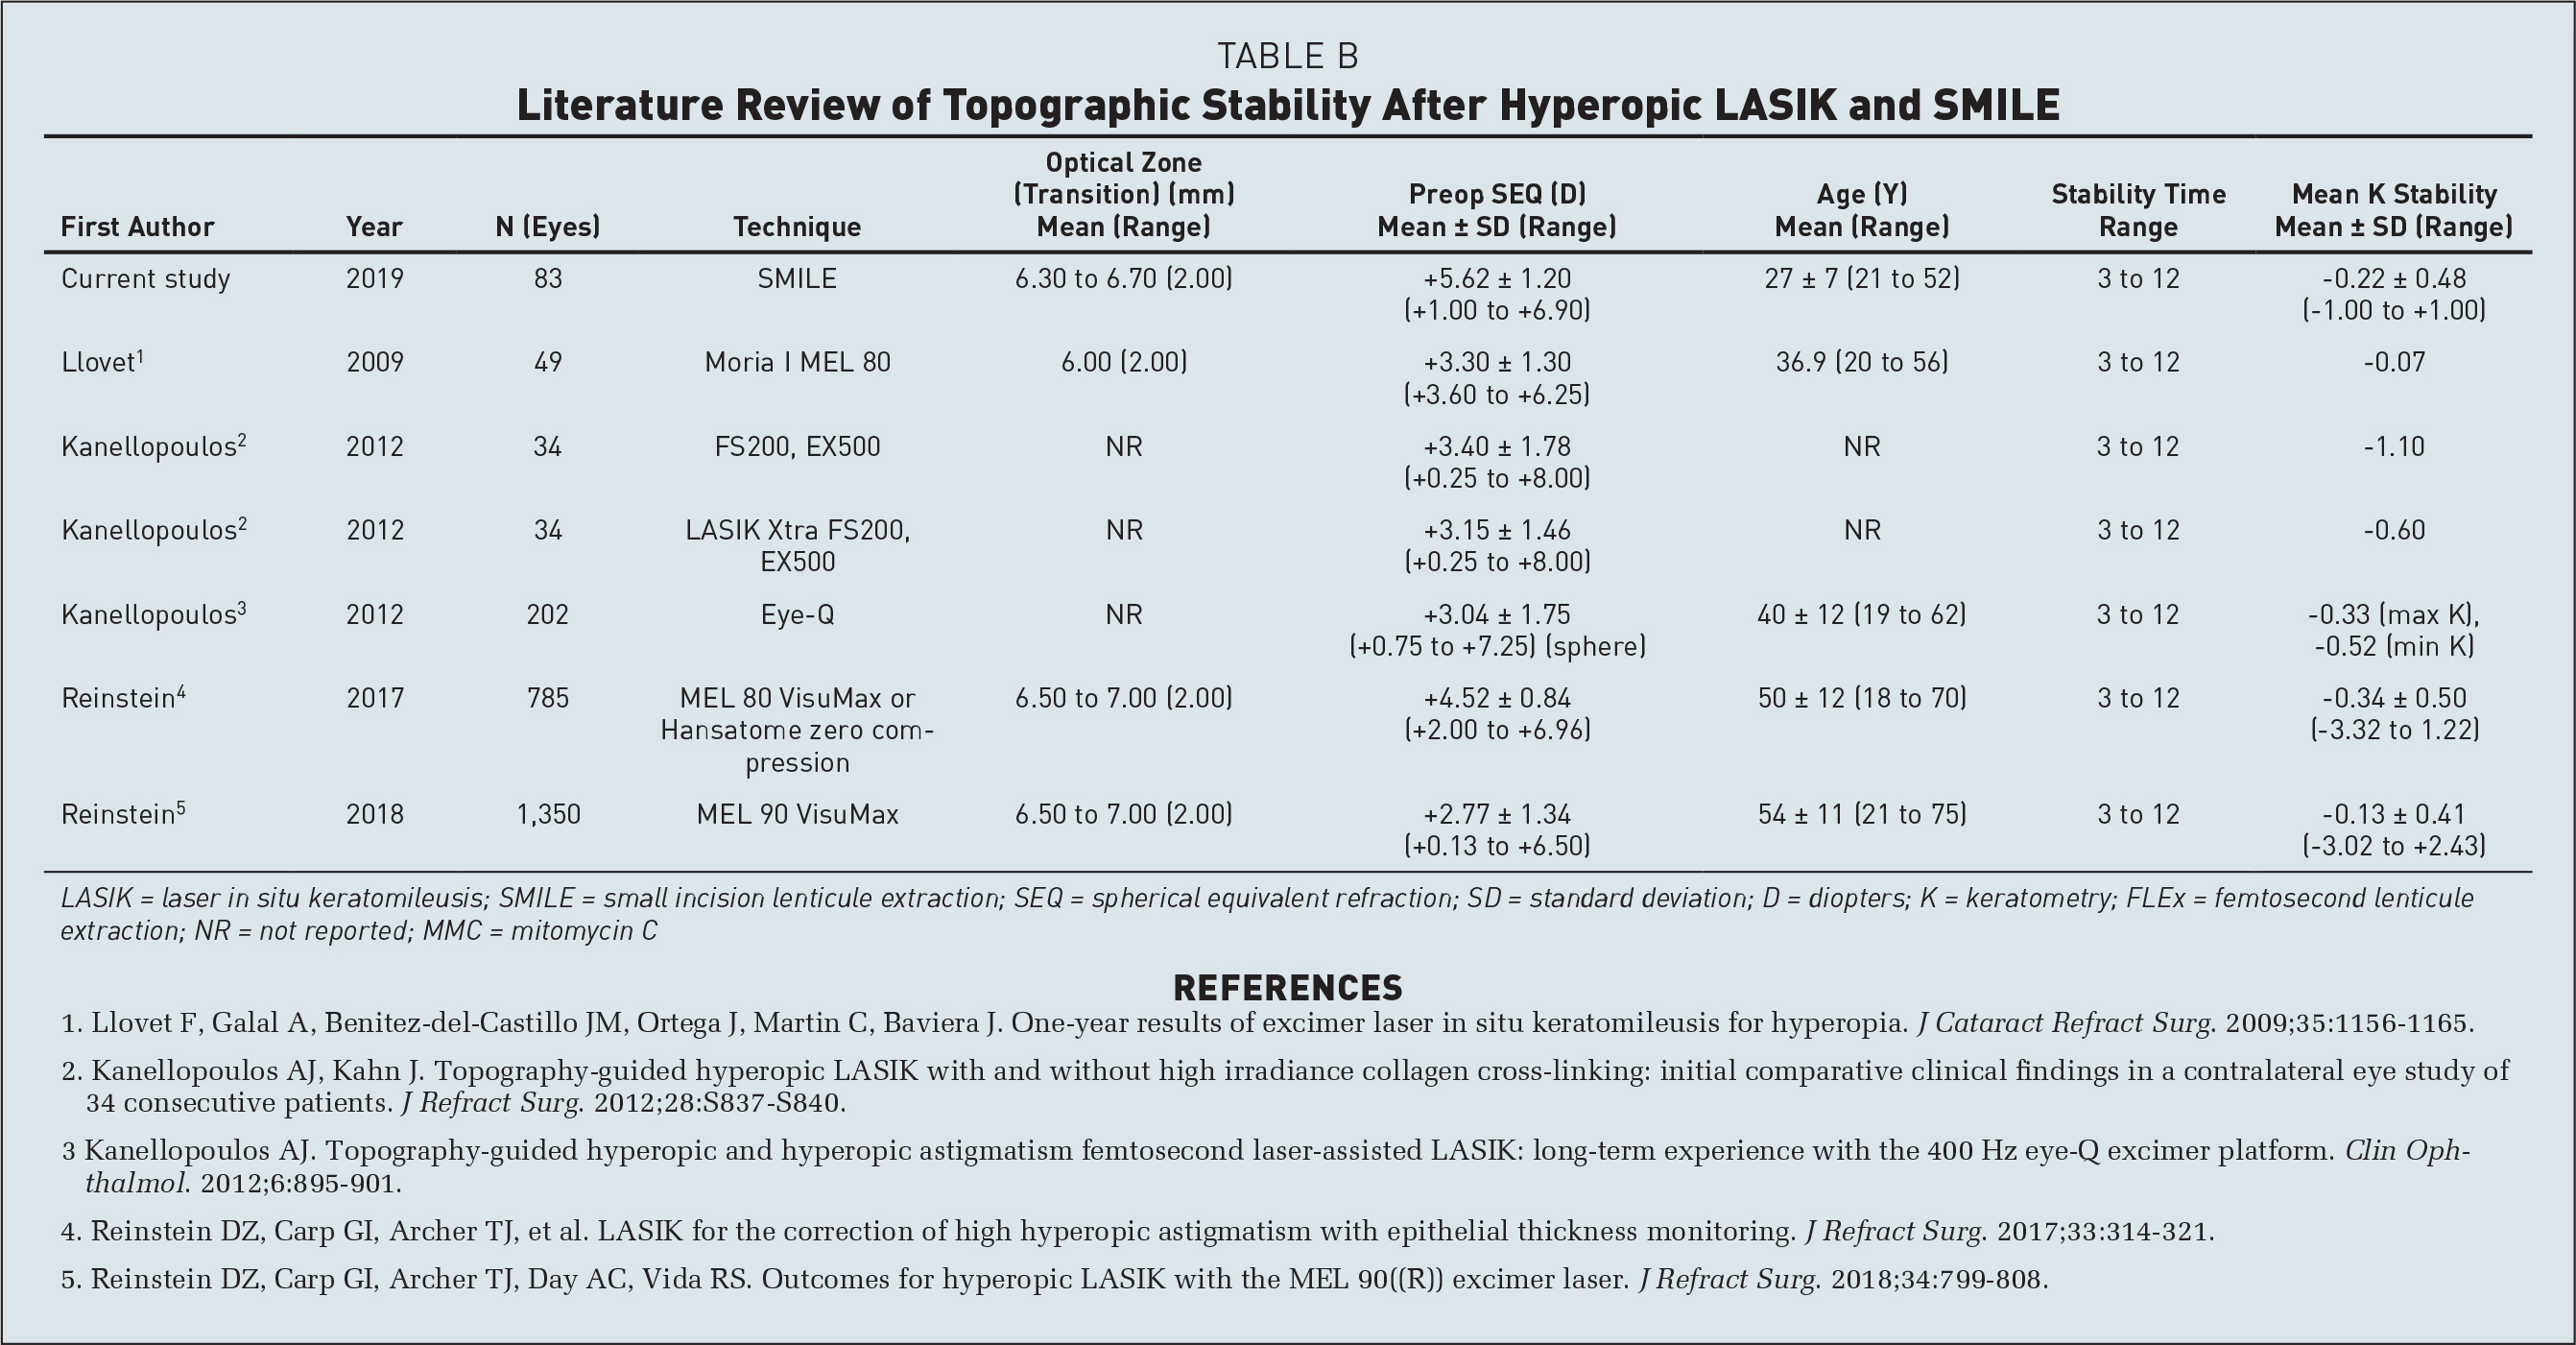 Literature Review of Topographic Stability After Hyperopic LASIK and SMILE